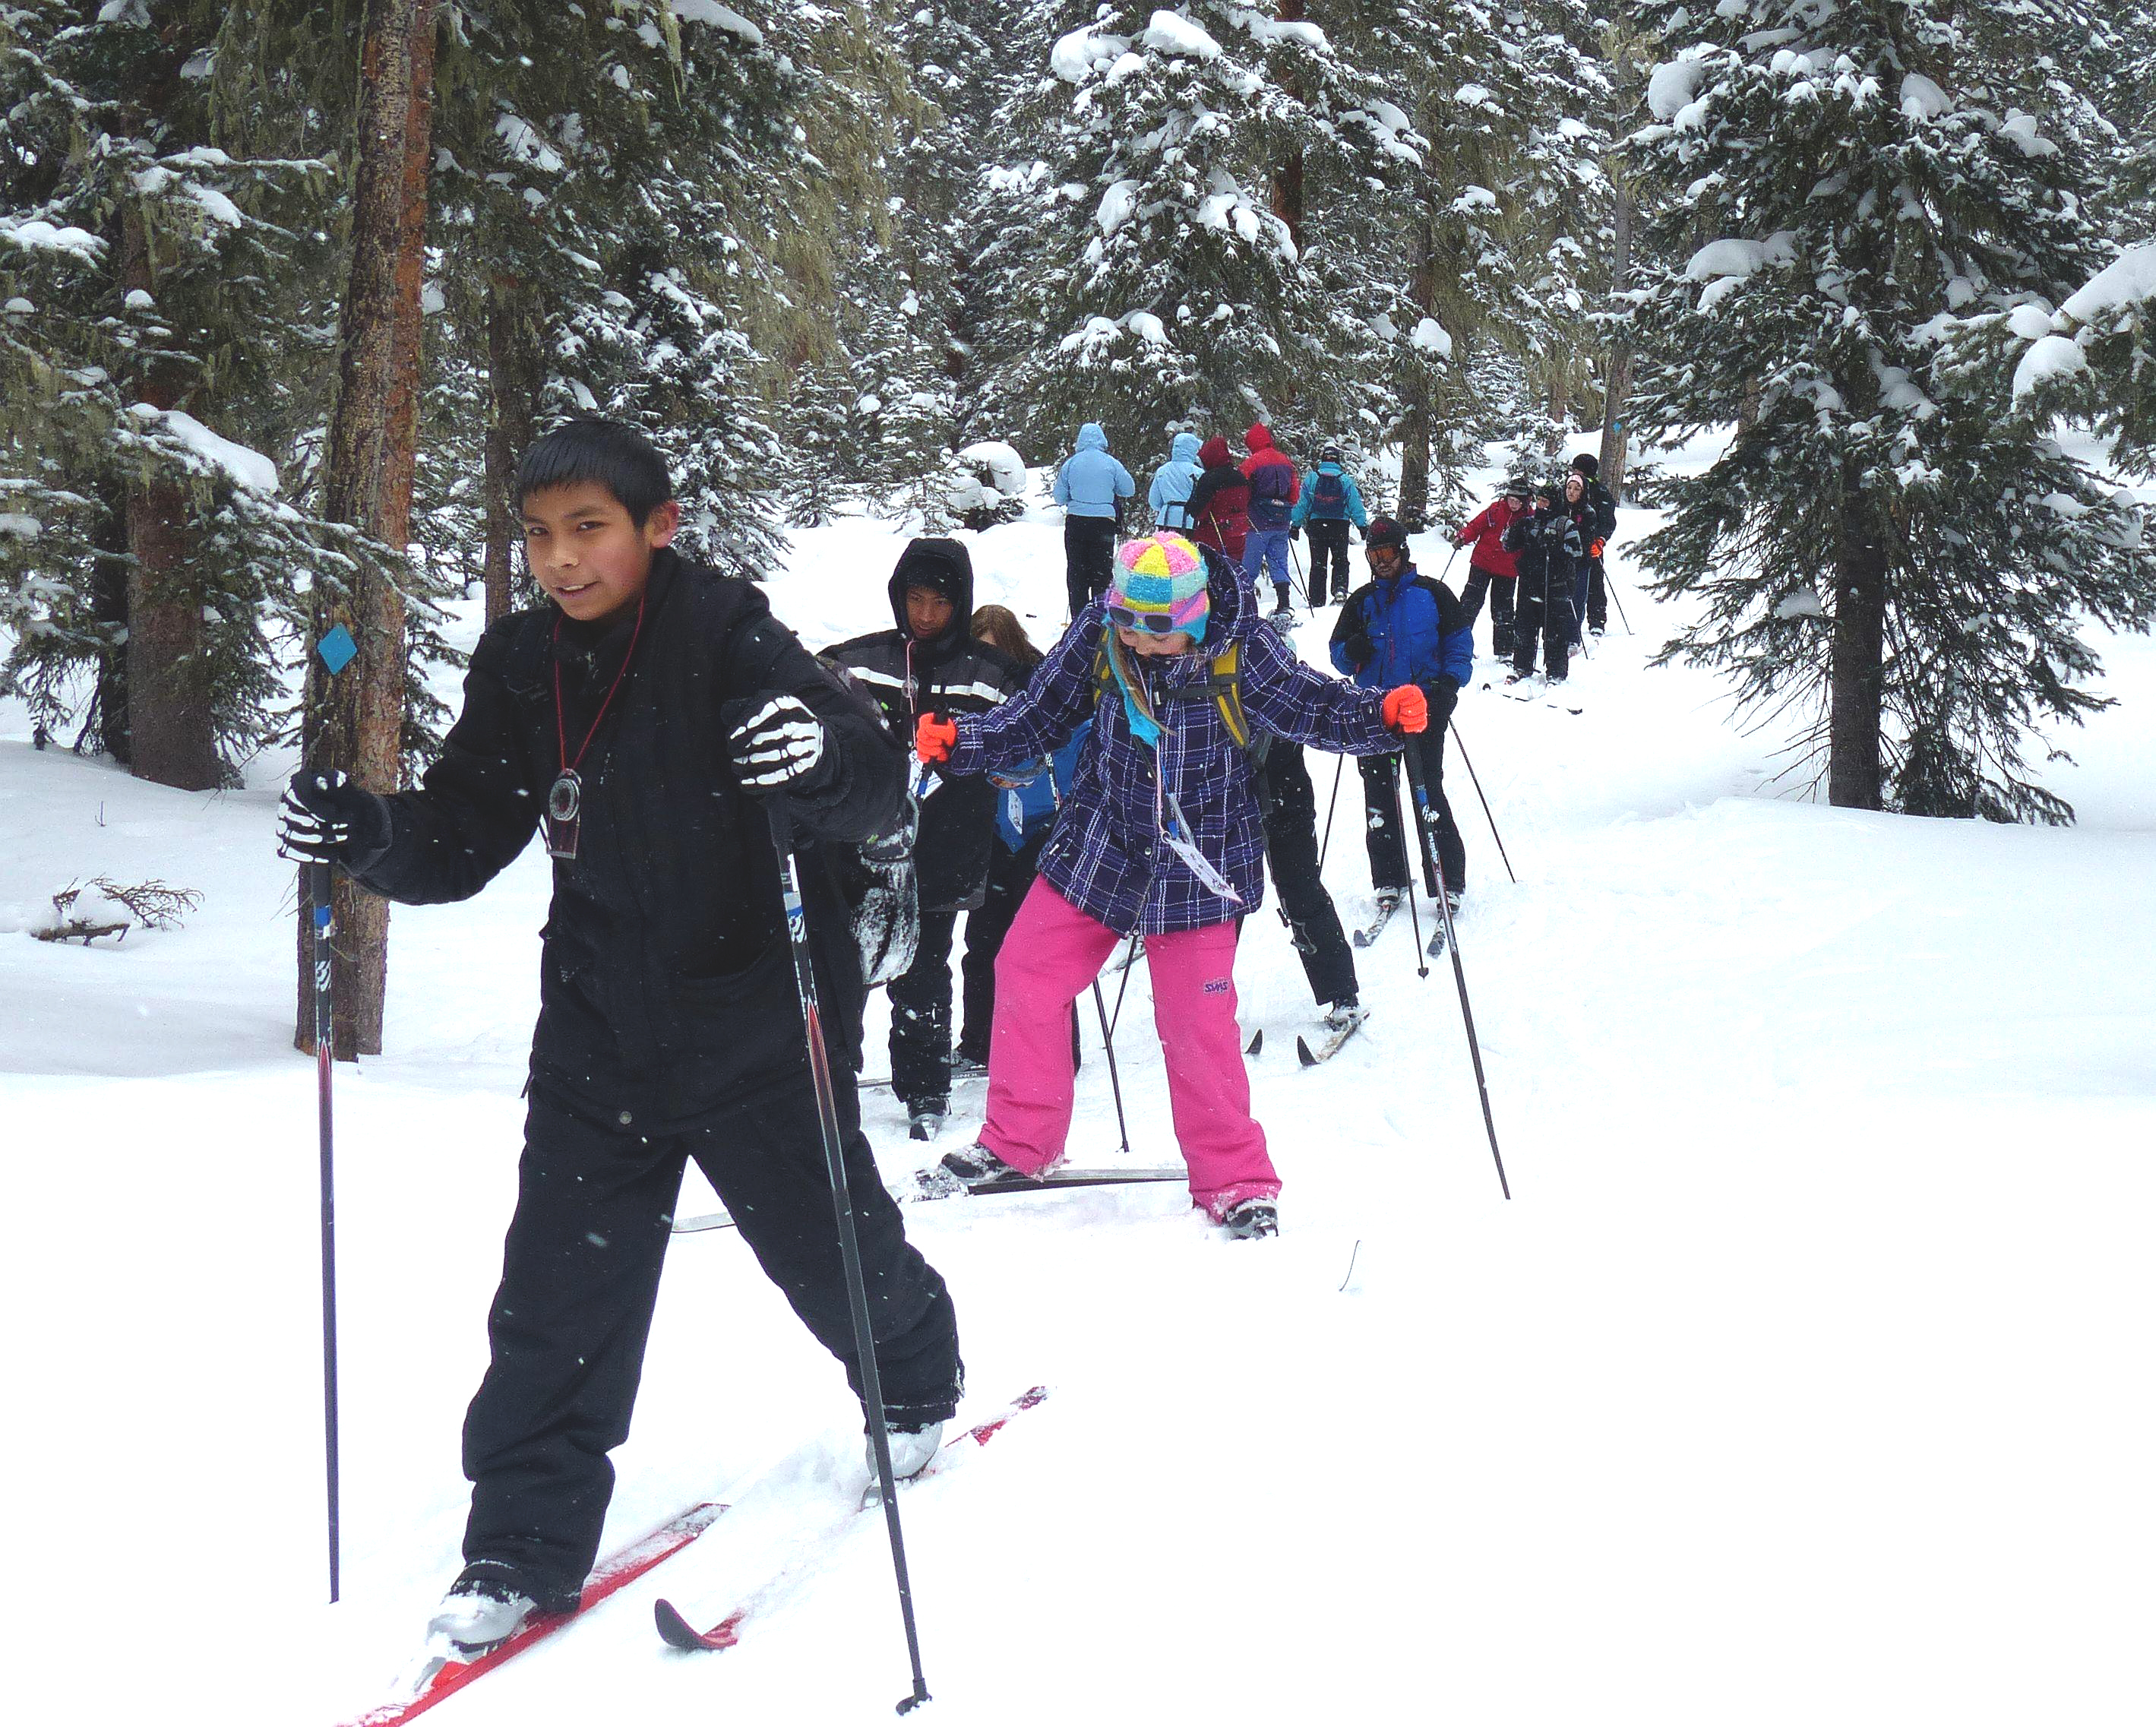 Skis-for-Kids-GMNC